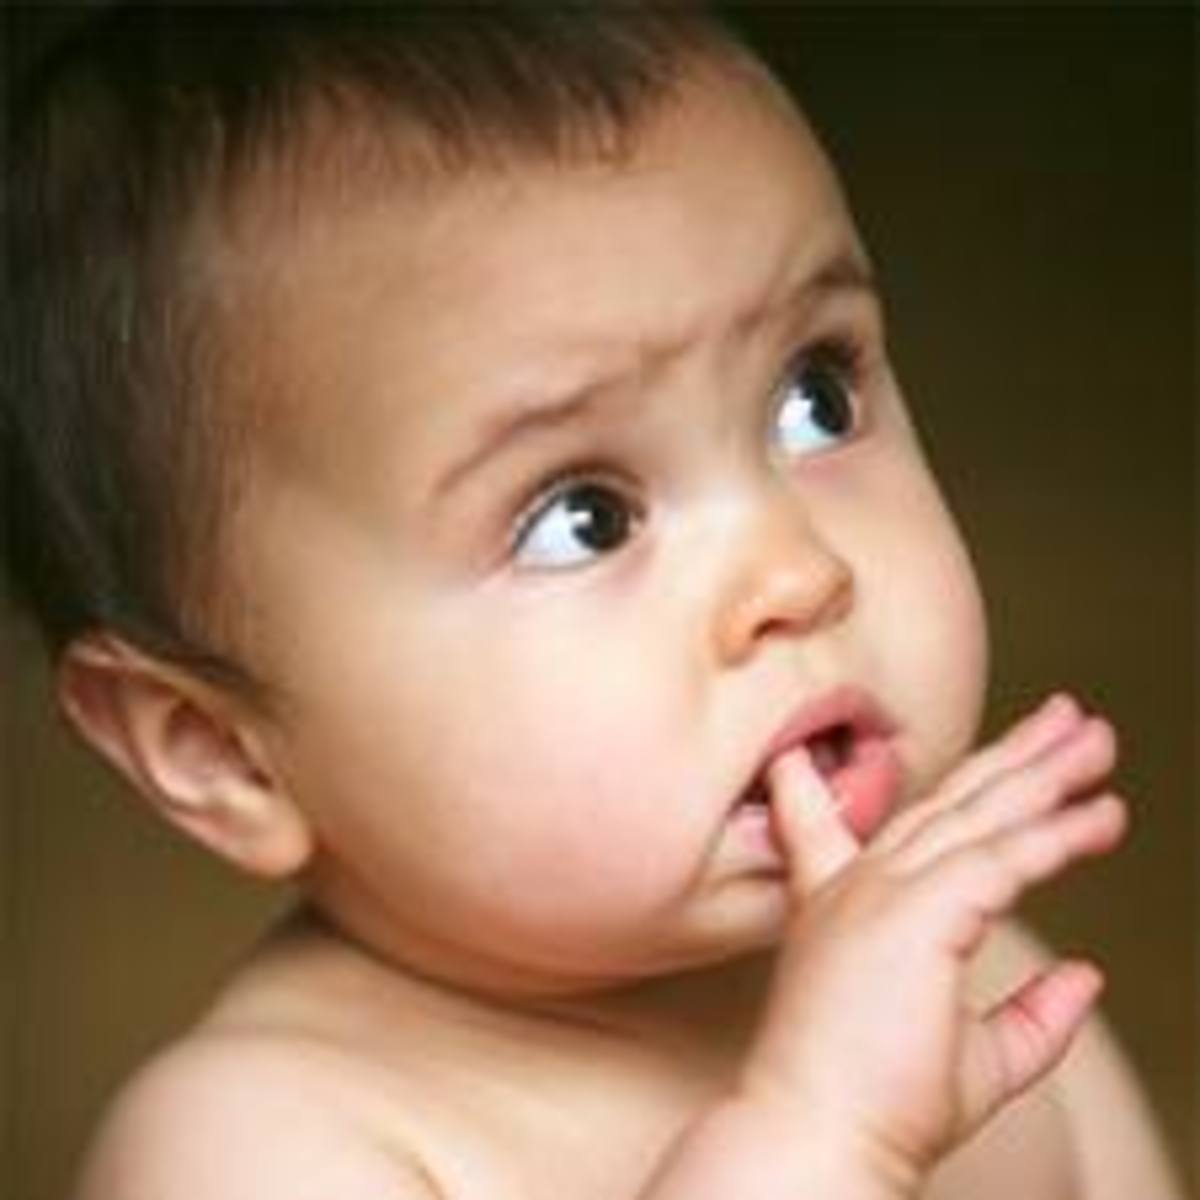 Baby dream interpretation suggest that babies are a symbol of innocence, purity, and youth. Baby dream interpretation also says that baby dreams may be a sign that we need to mature.